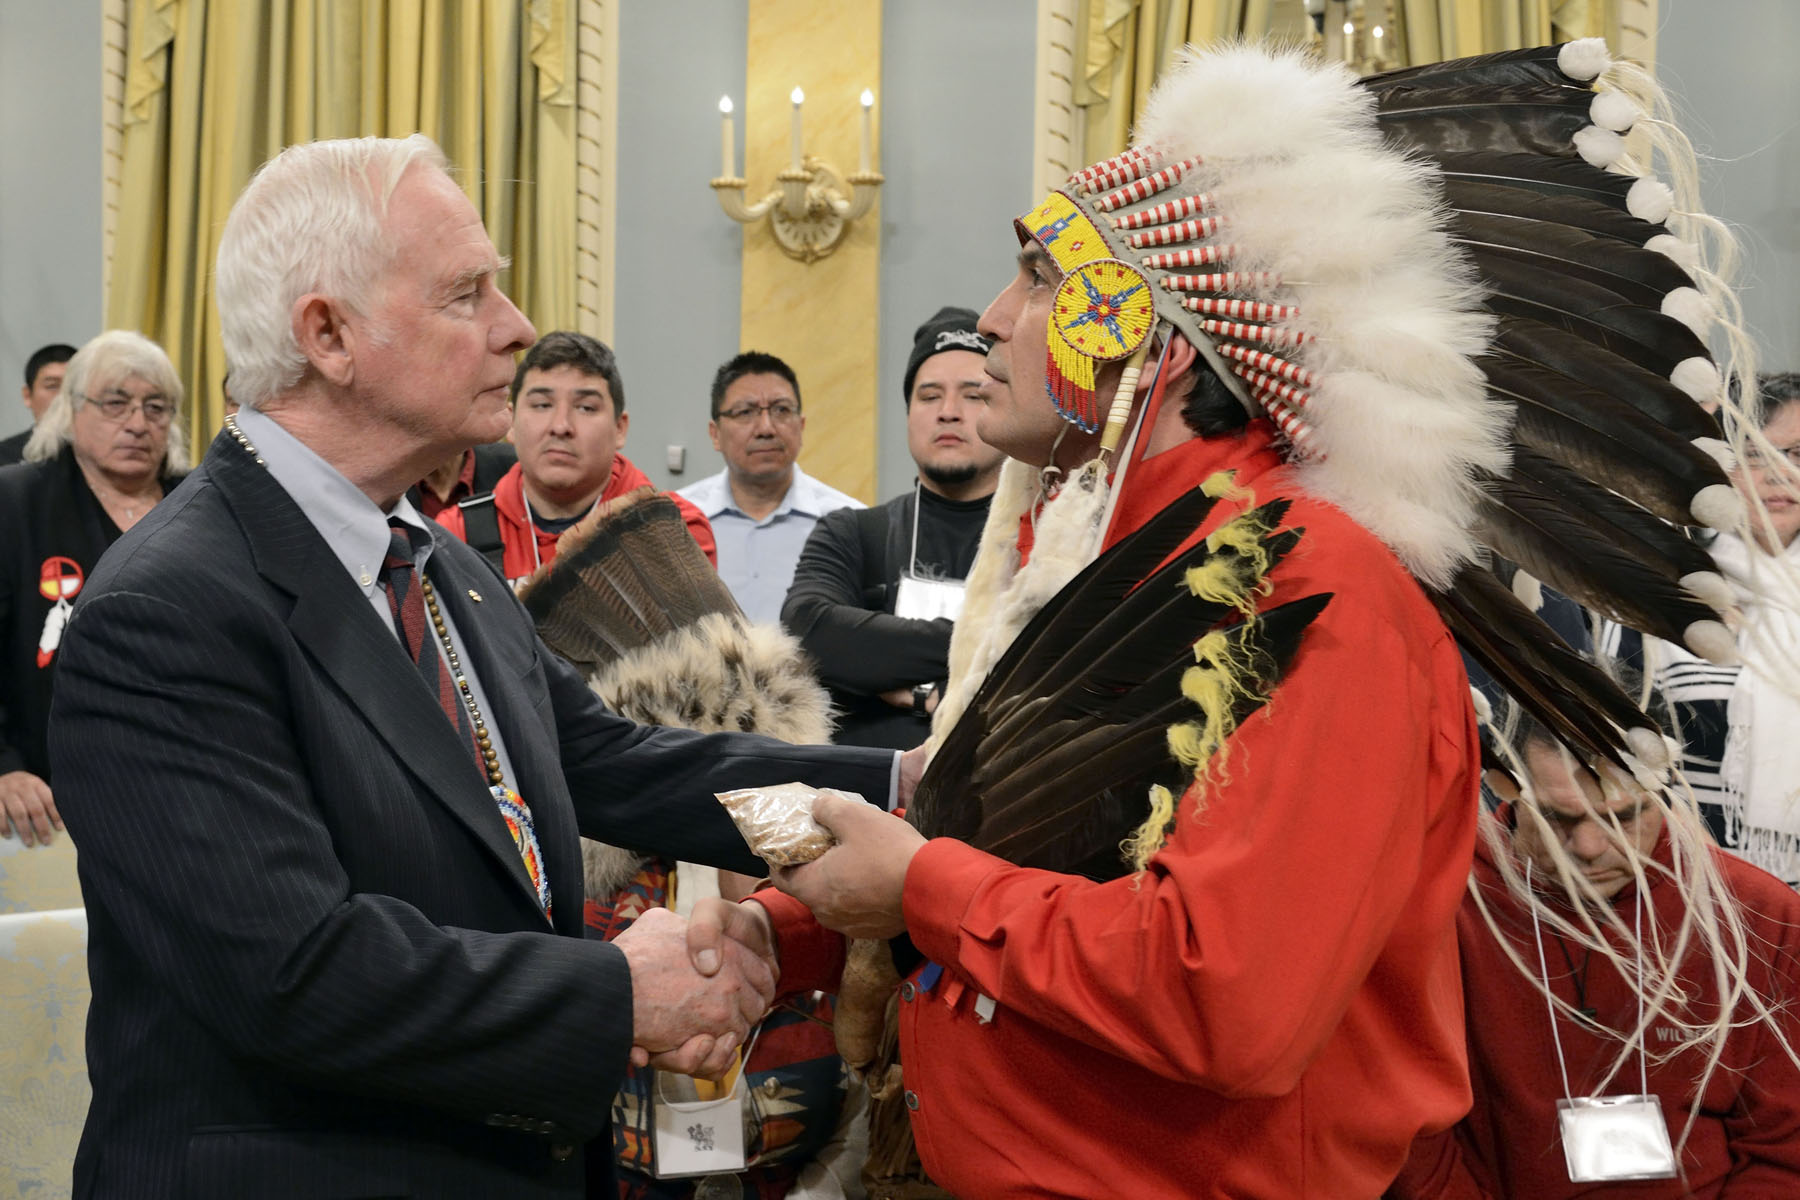 Governor General exchanged tobacco with Regional Chief Perry Bellegarde.